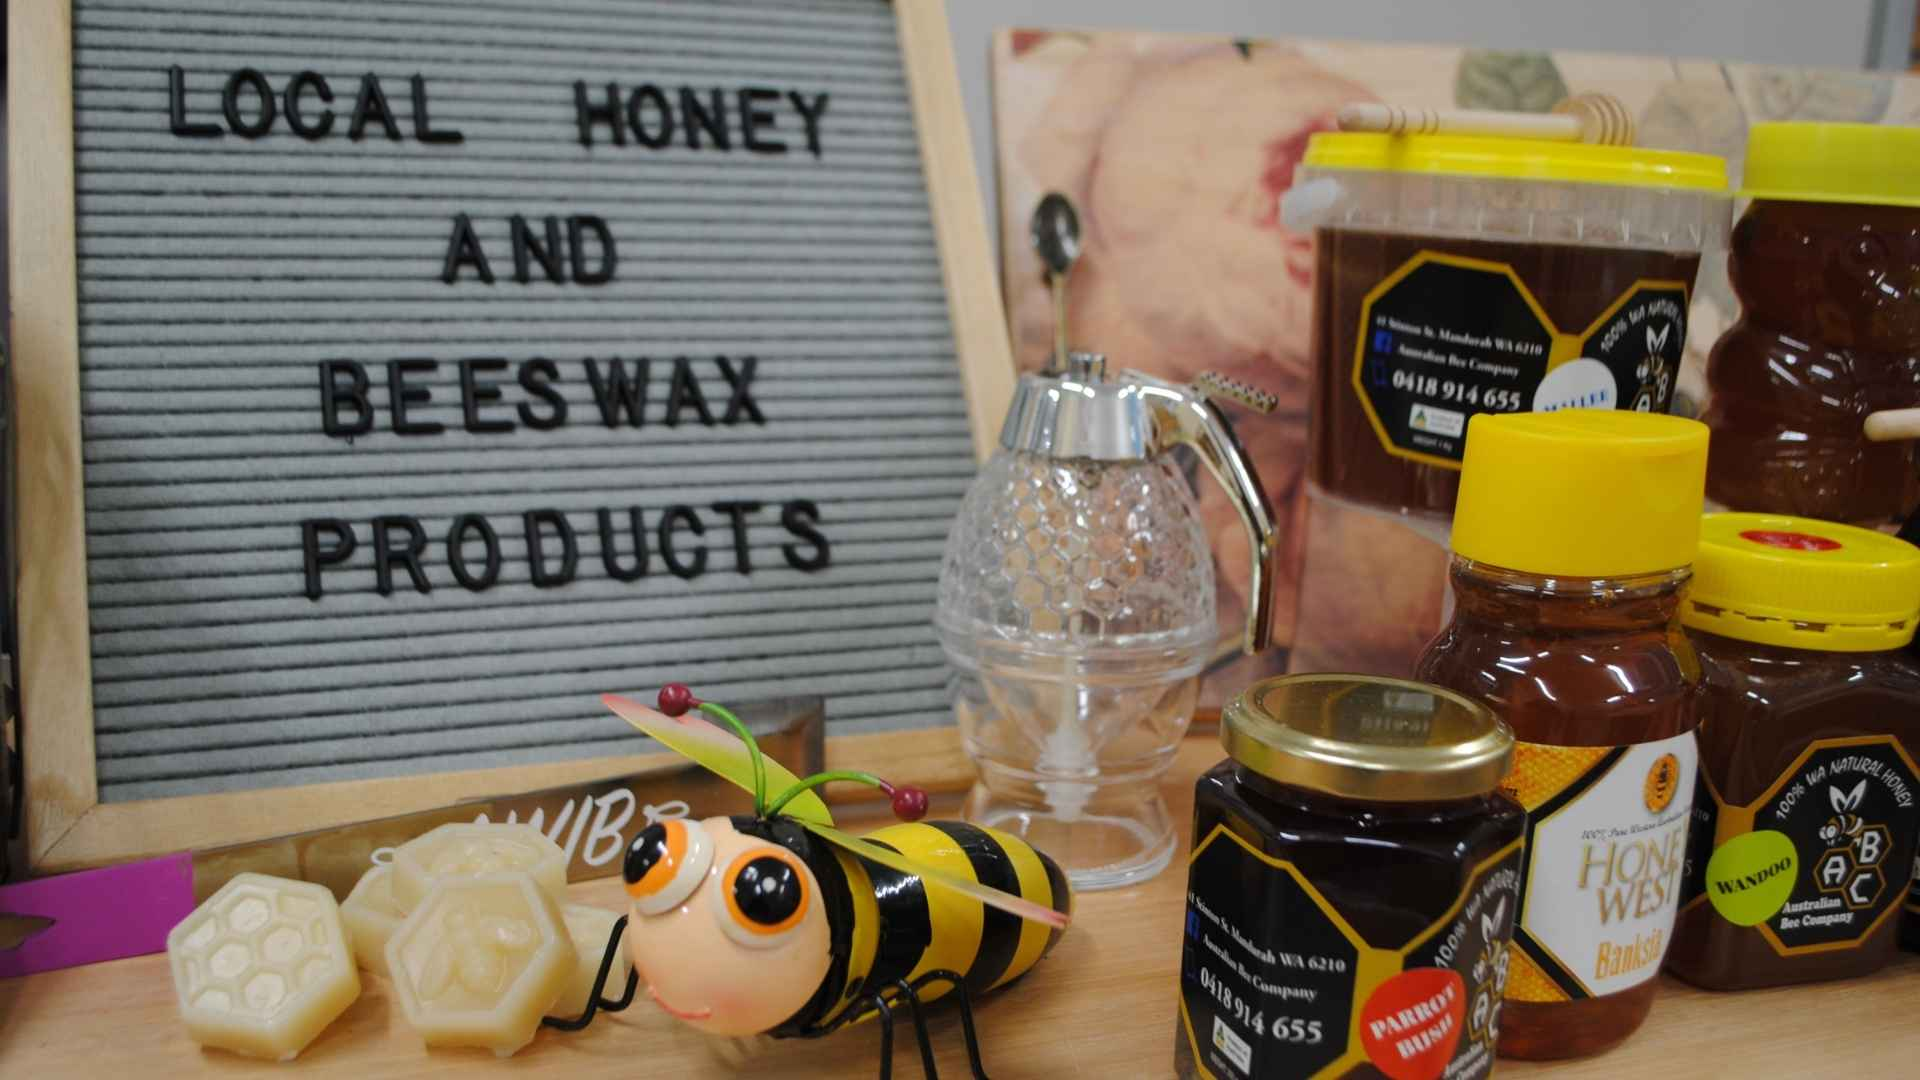 May is National Honey Month